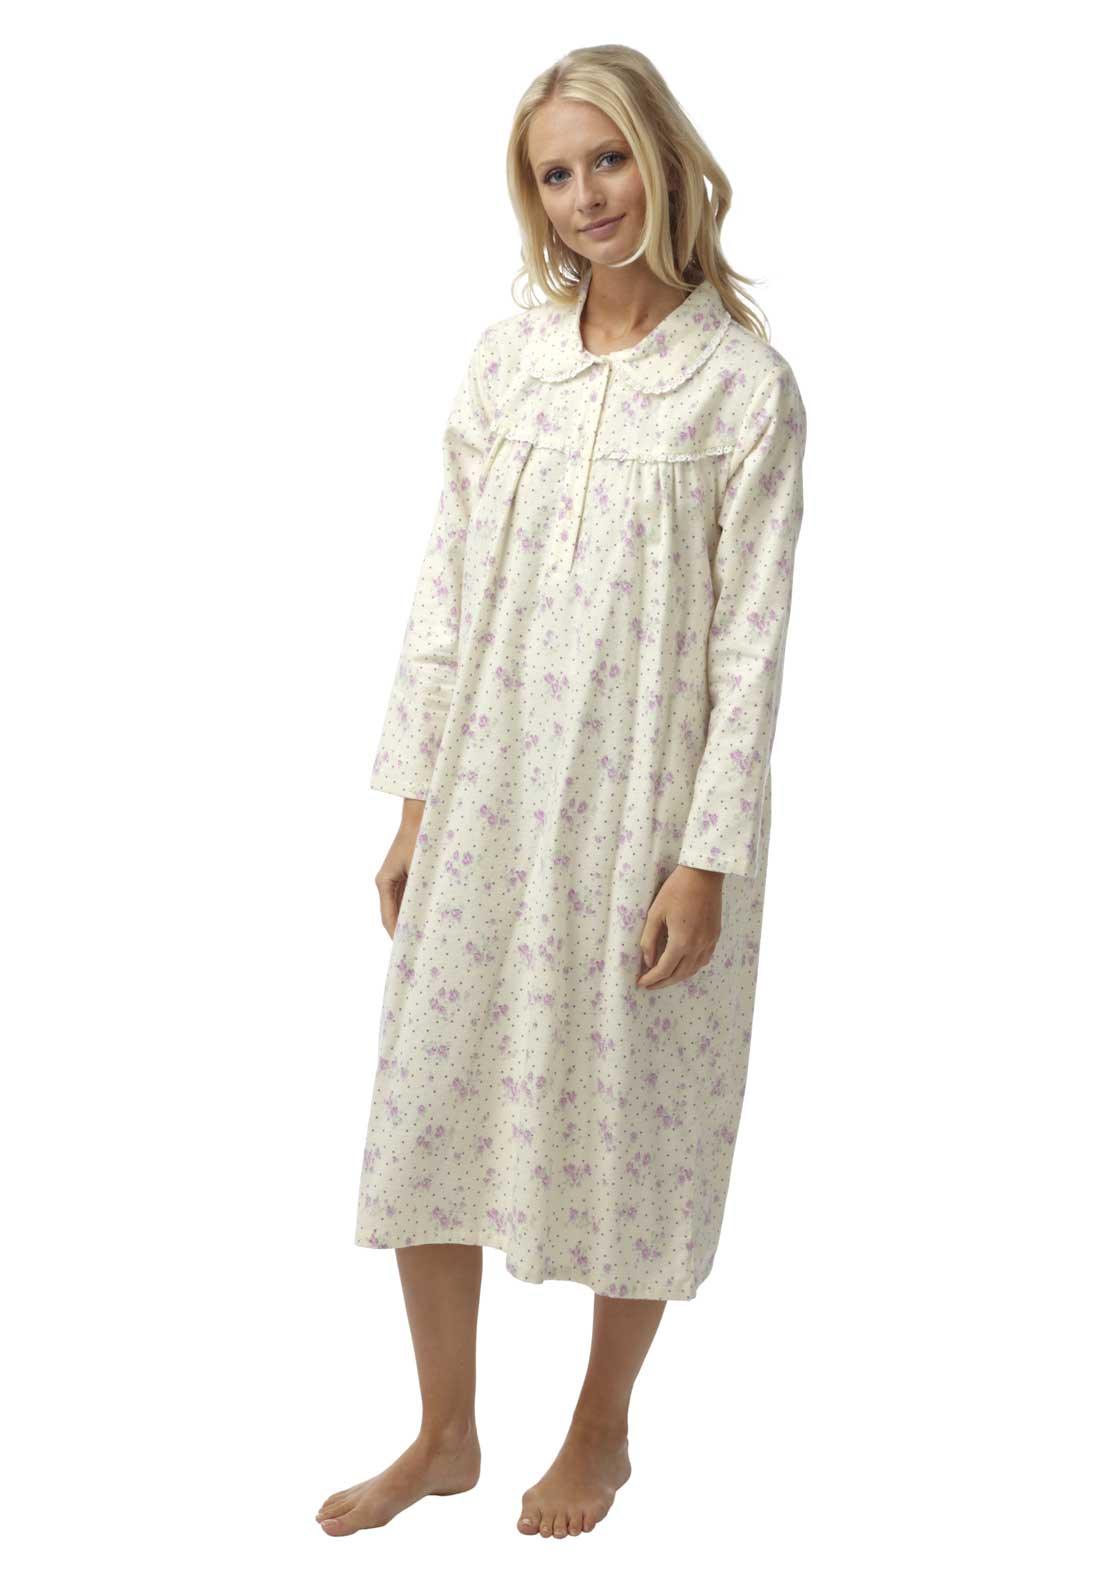 Marlon Floral Print Brushed Cotton Nightdress, Cream